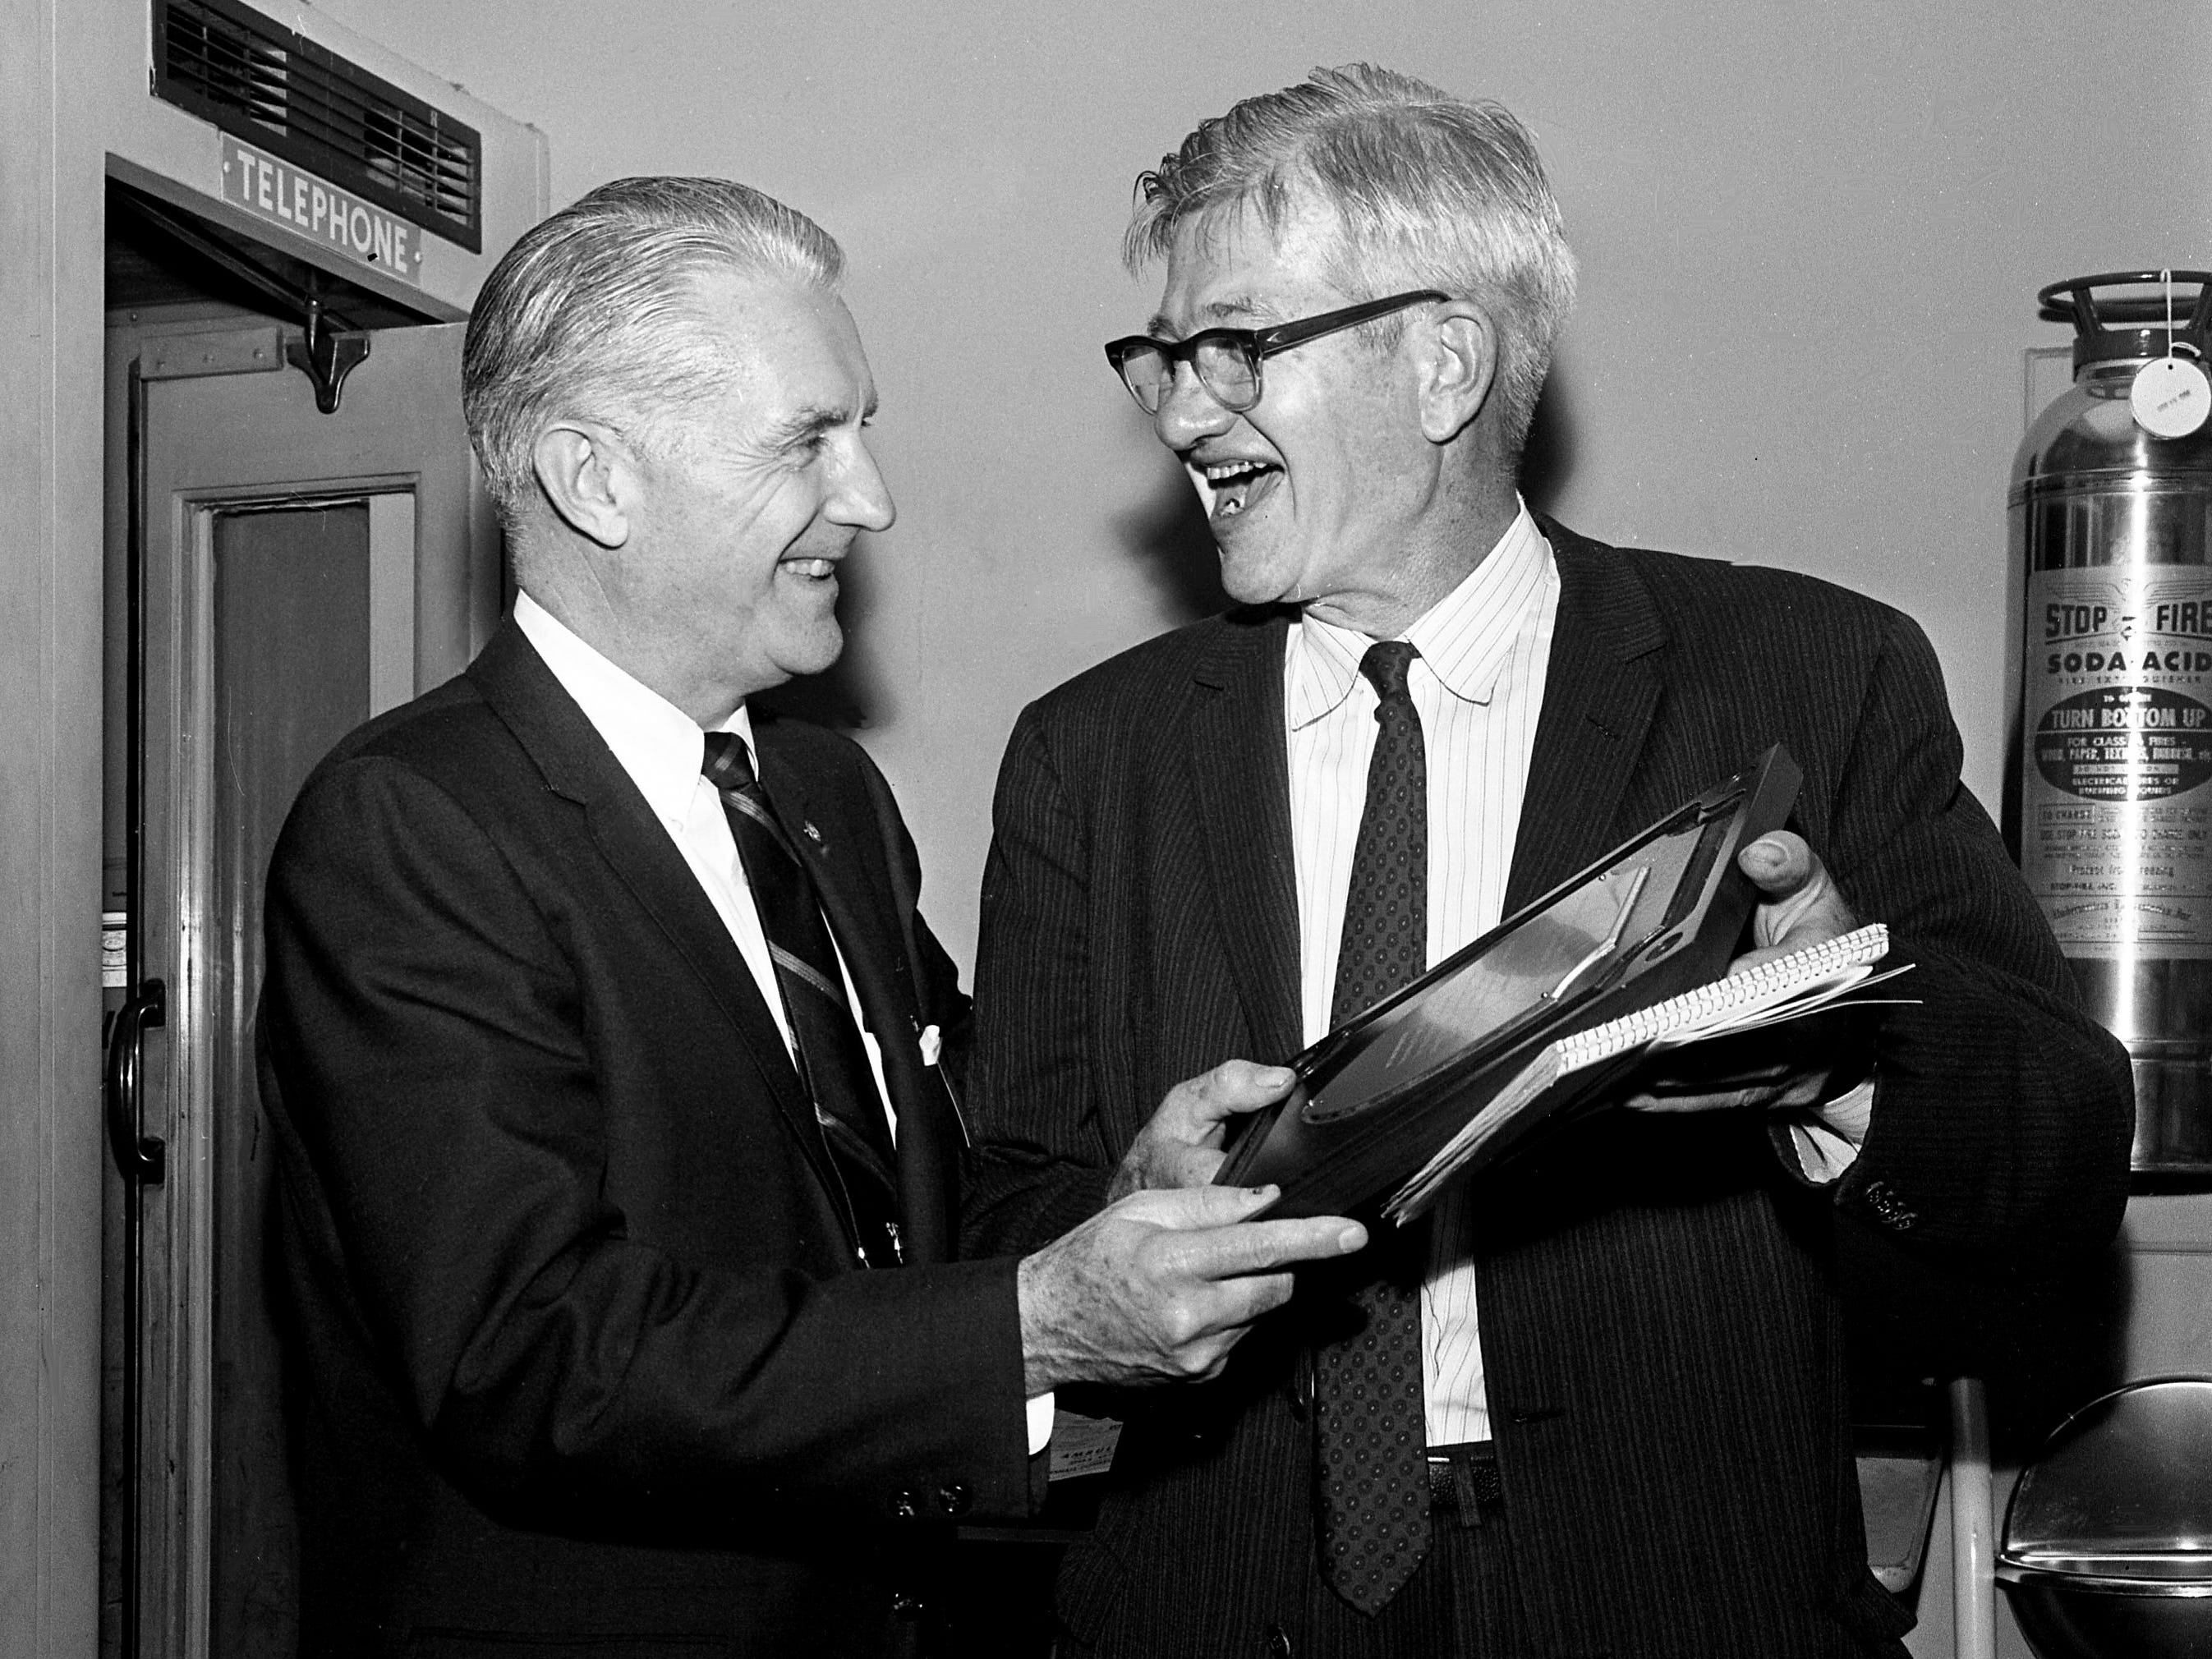 Nat Caldwell, right, Pulitzer Prize-winning reporter for The Tennessean, gets a plaque Oct. 25, 1966, from the president of the state rural cooperatives association, Paul Tidwell, for years of covering issues in rural Tennessee.